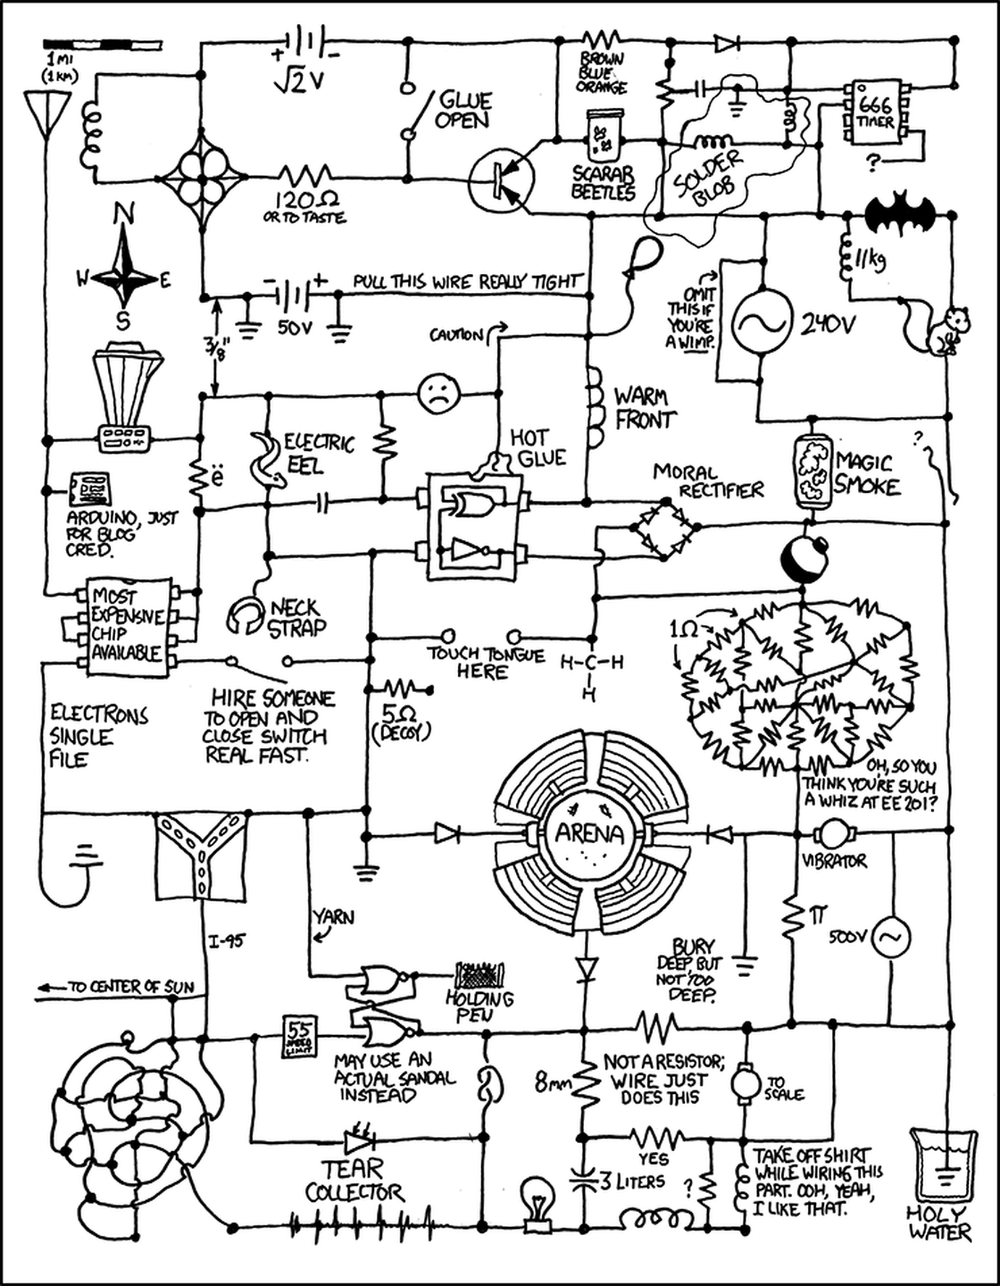 rube goldberg machine - Google Search Engineering Humor, Electrical  Engineering, Science Humor, Electric